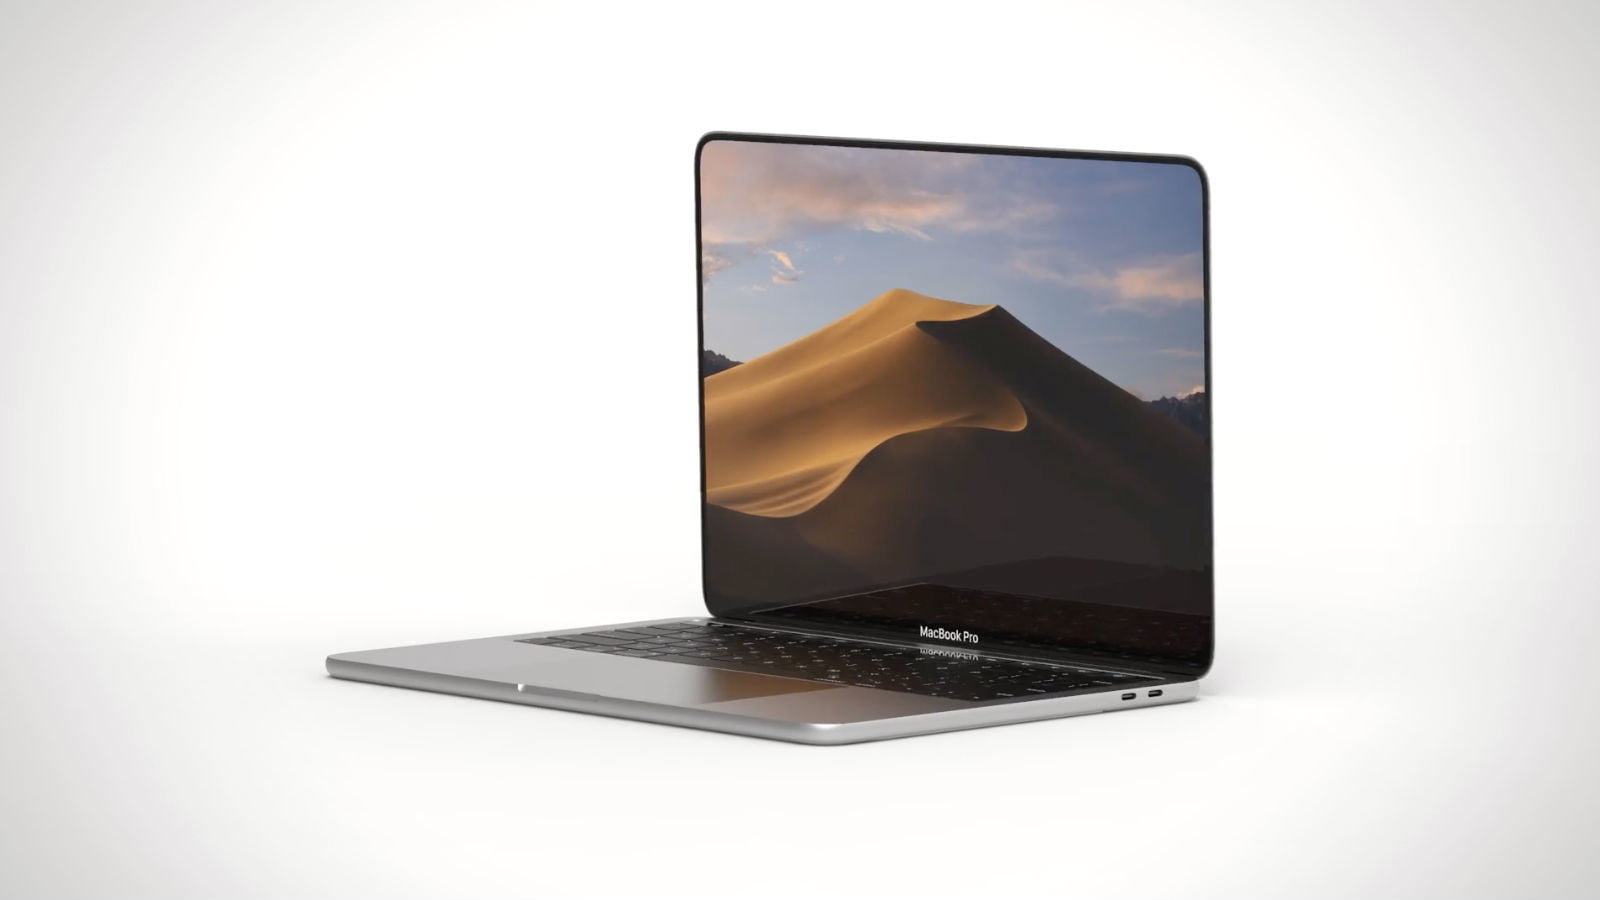 MacBook Pro 16-inch: Everything you need to know